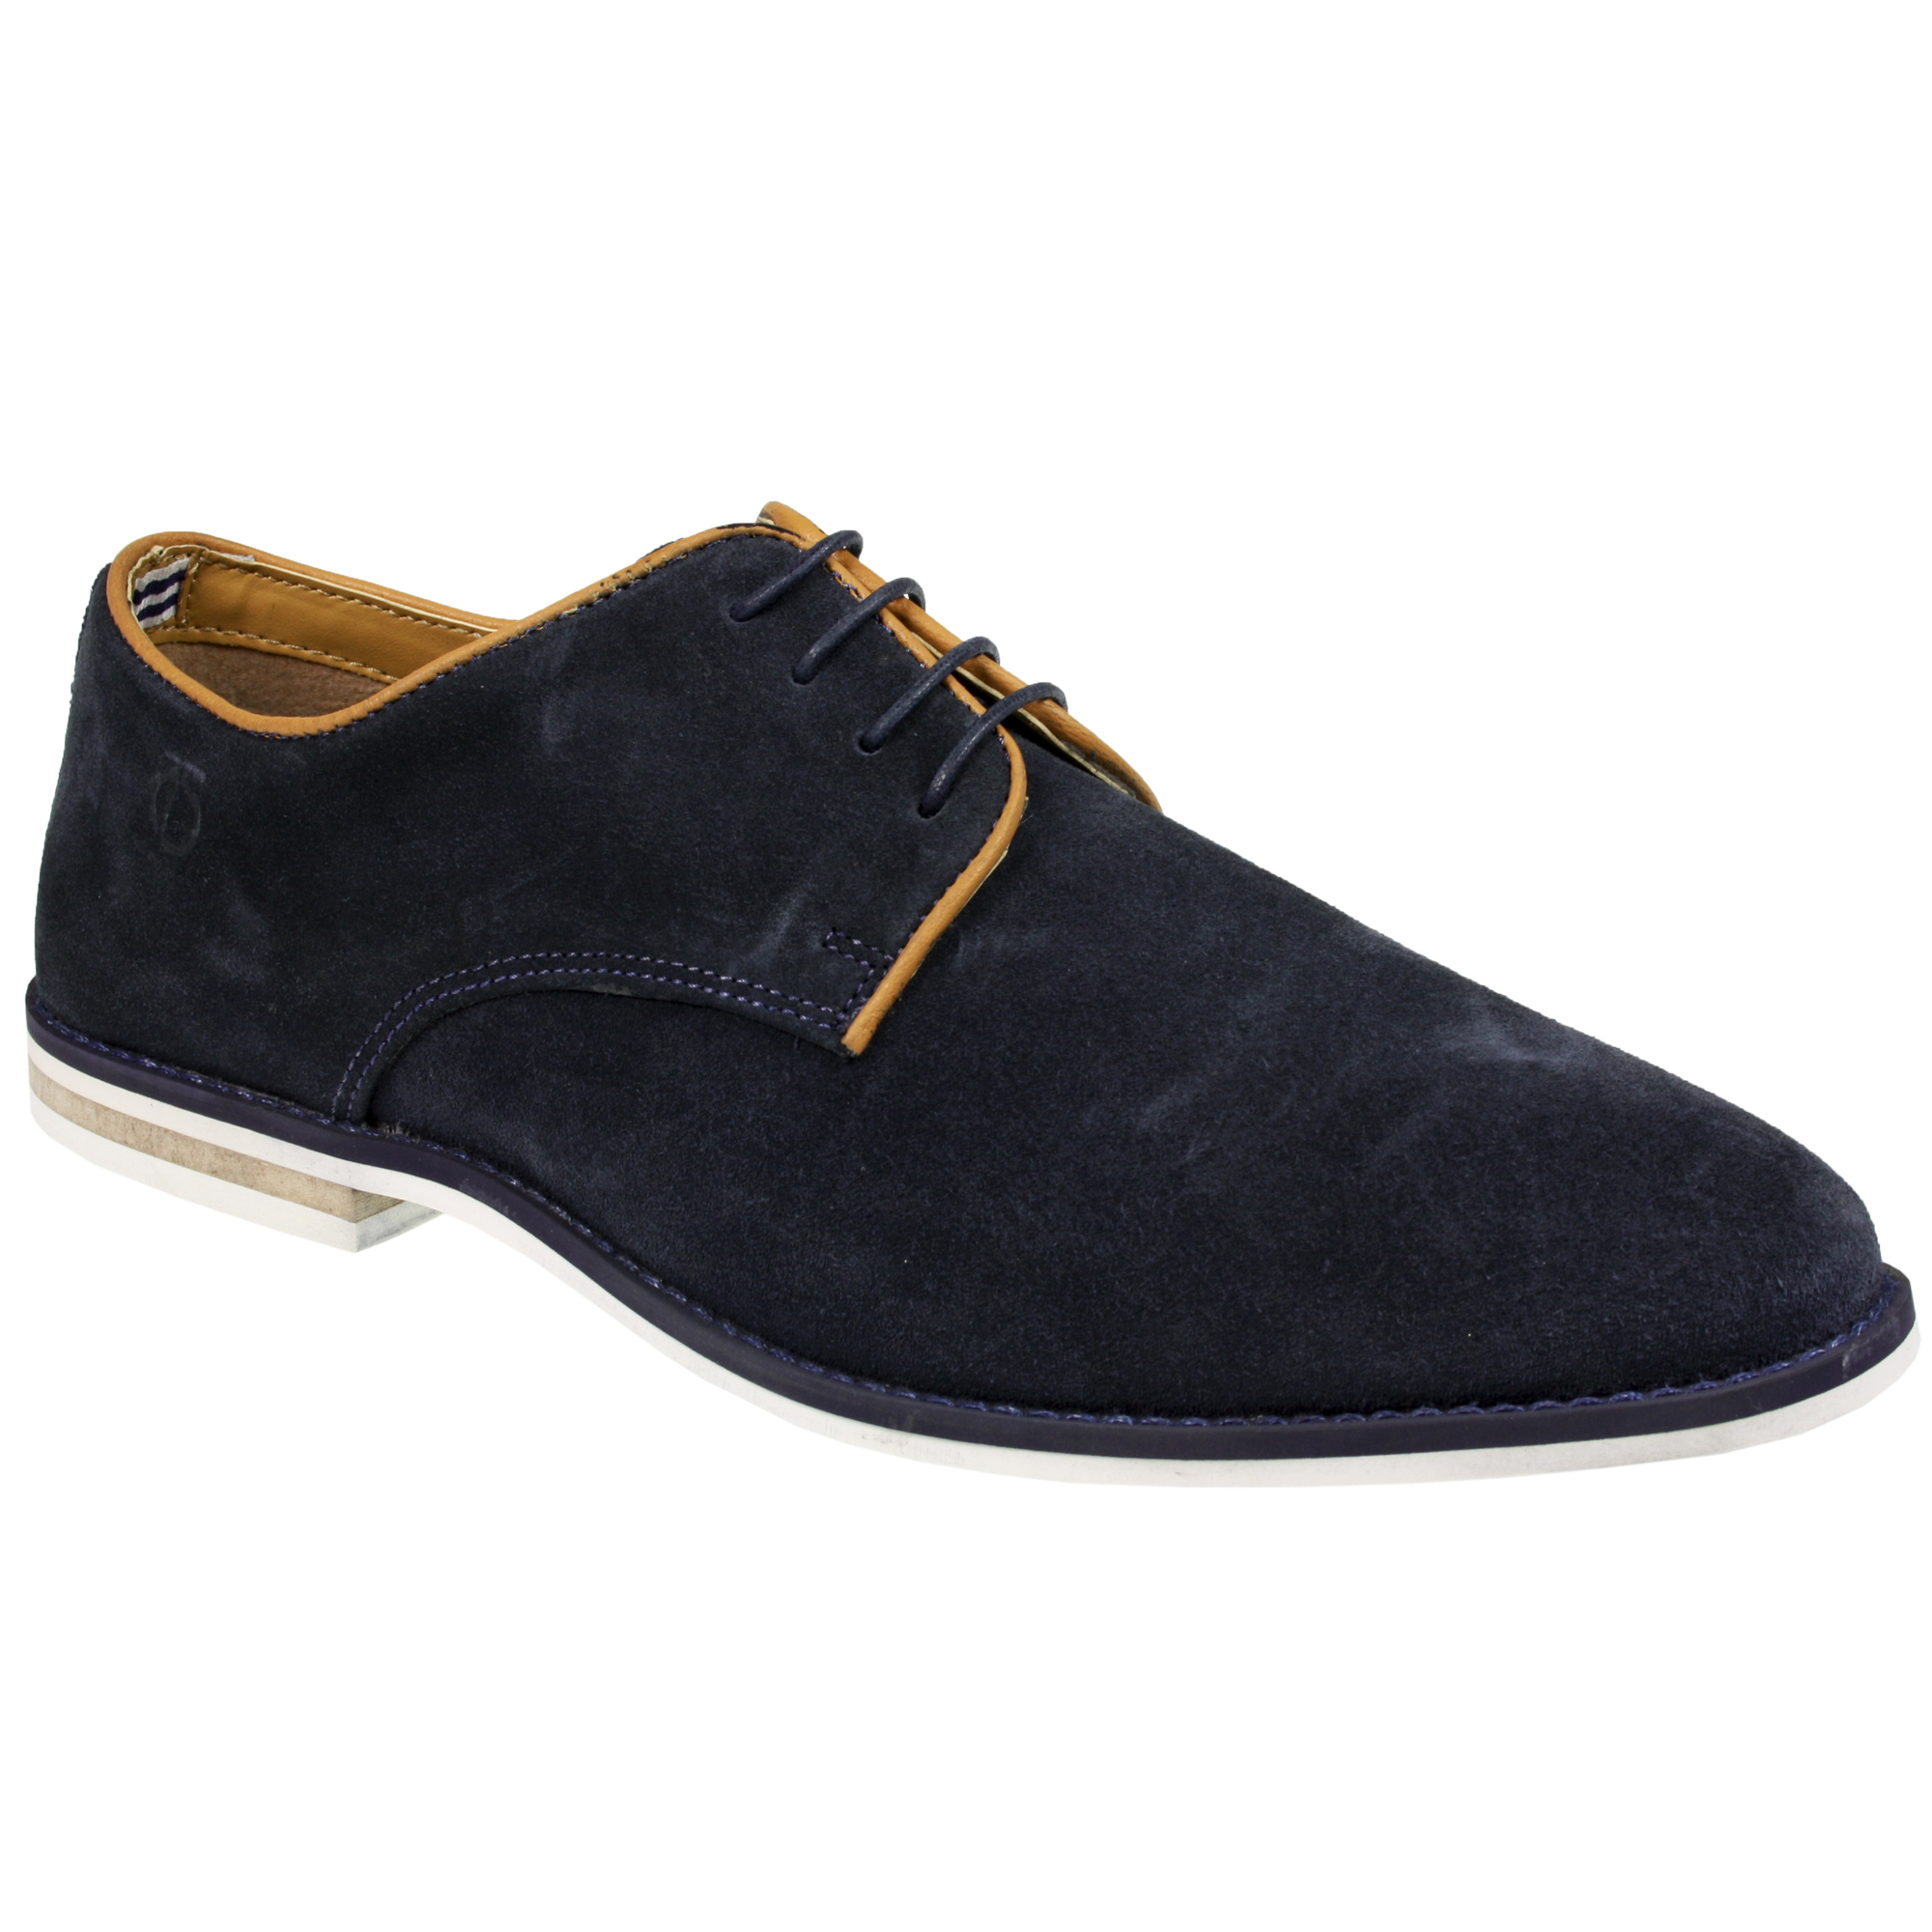 Peter Werth Shoes Price